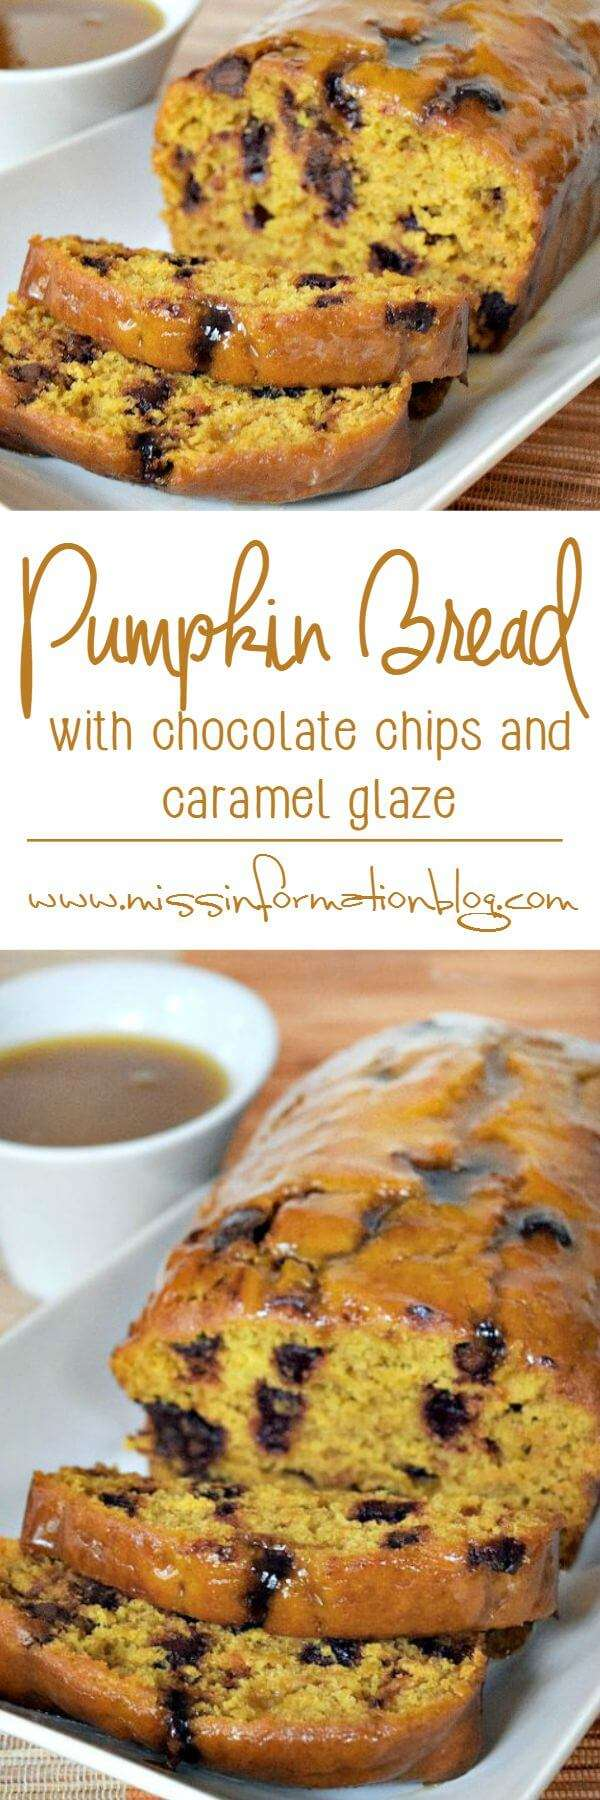 Easy Chocolate Chip Pumpkin Bread Recipe | Miss Information